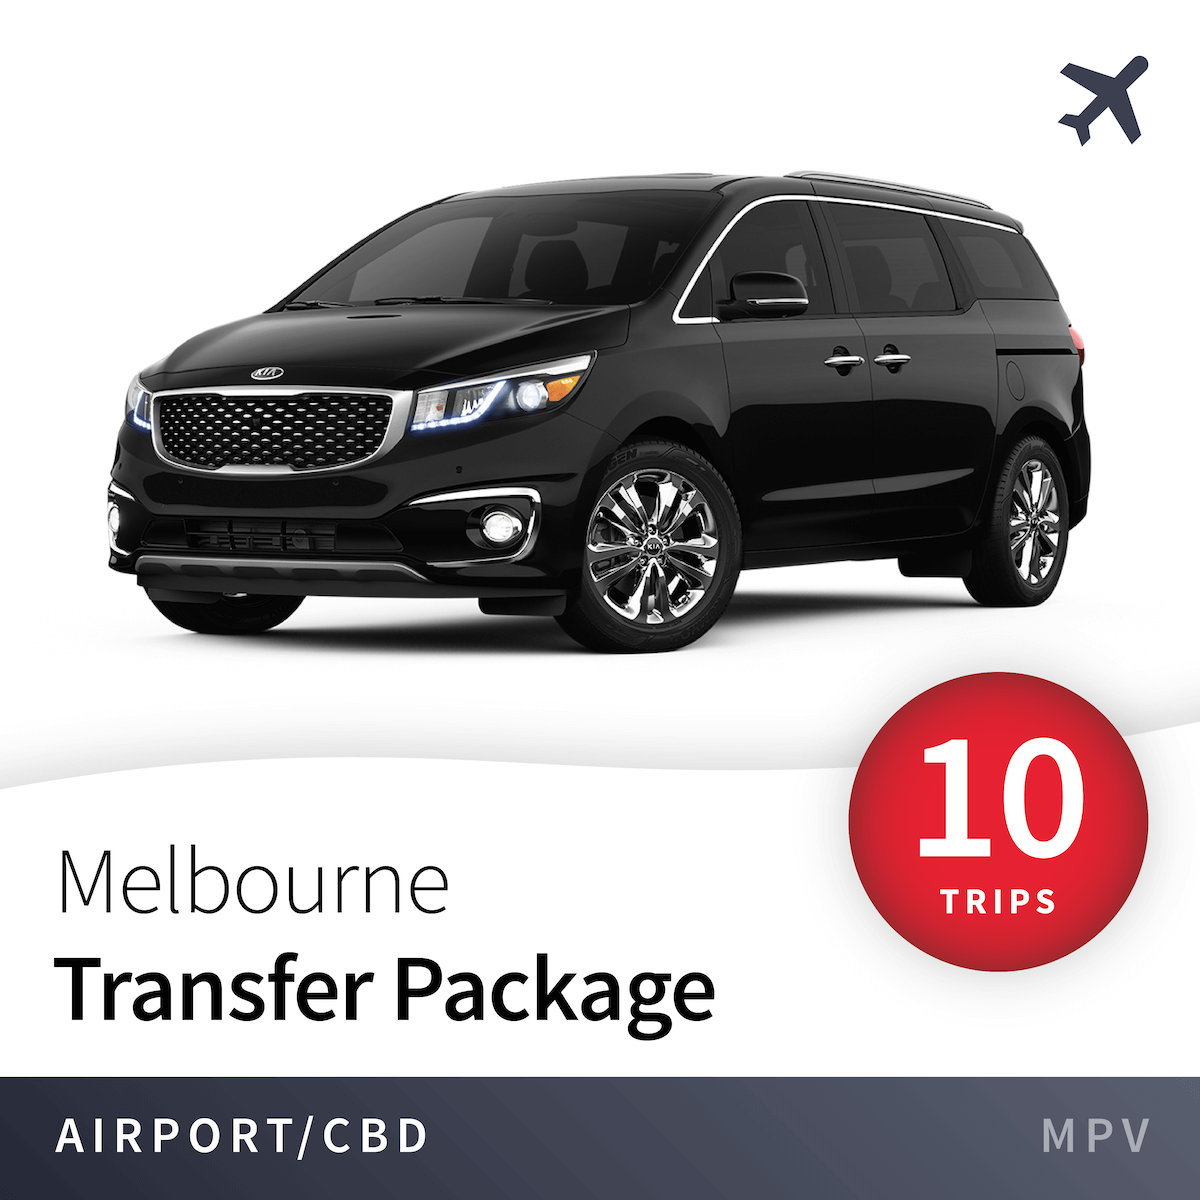 Melbourne Airport Transfer Package - MPV (10 Trips) 10